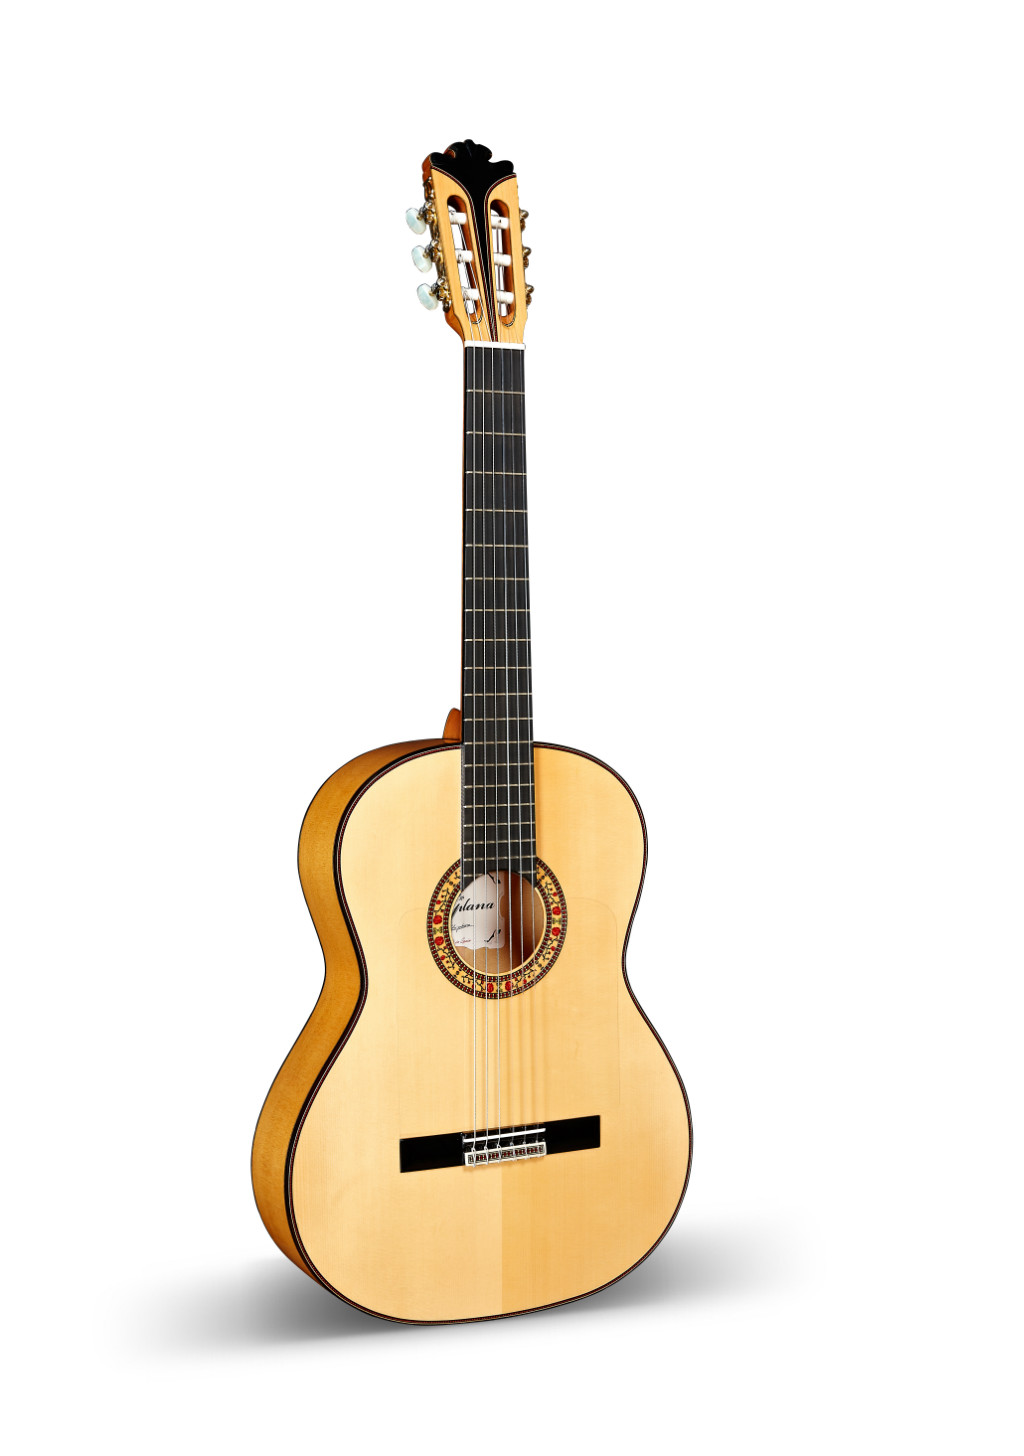 Key characteristics of a Spanish Flamenco Guitar